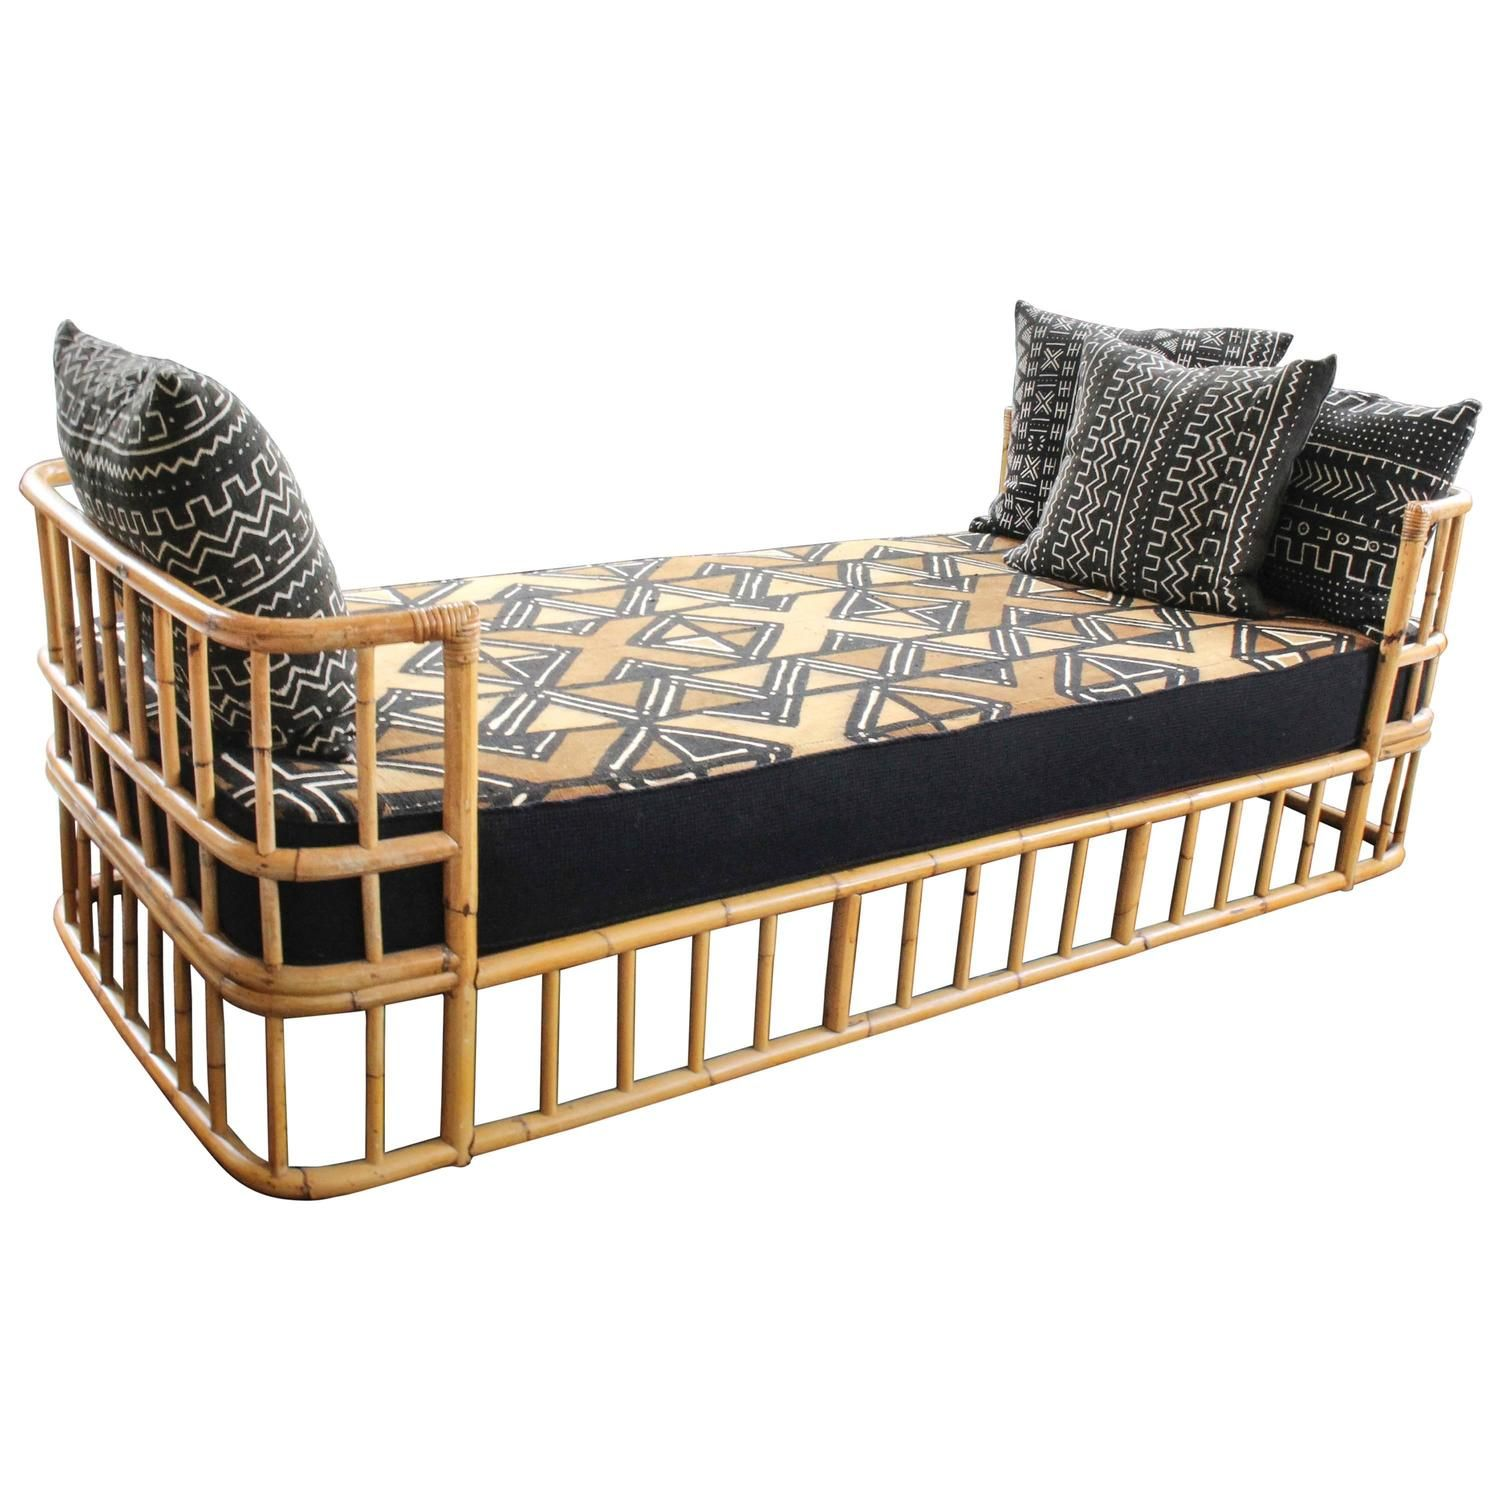 Mid20th Century French Rattan Daybed From a unique